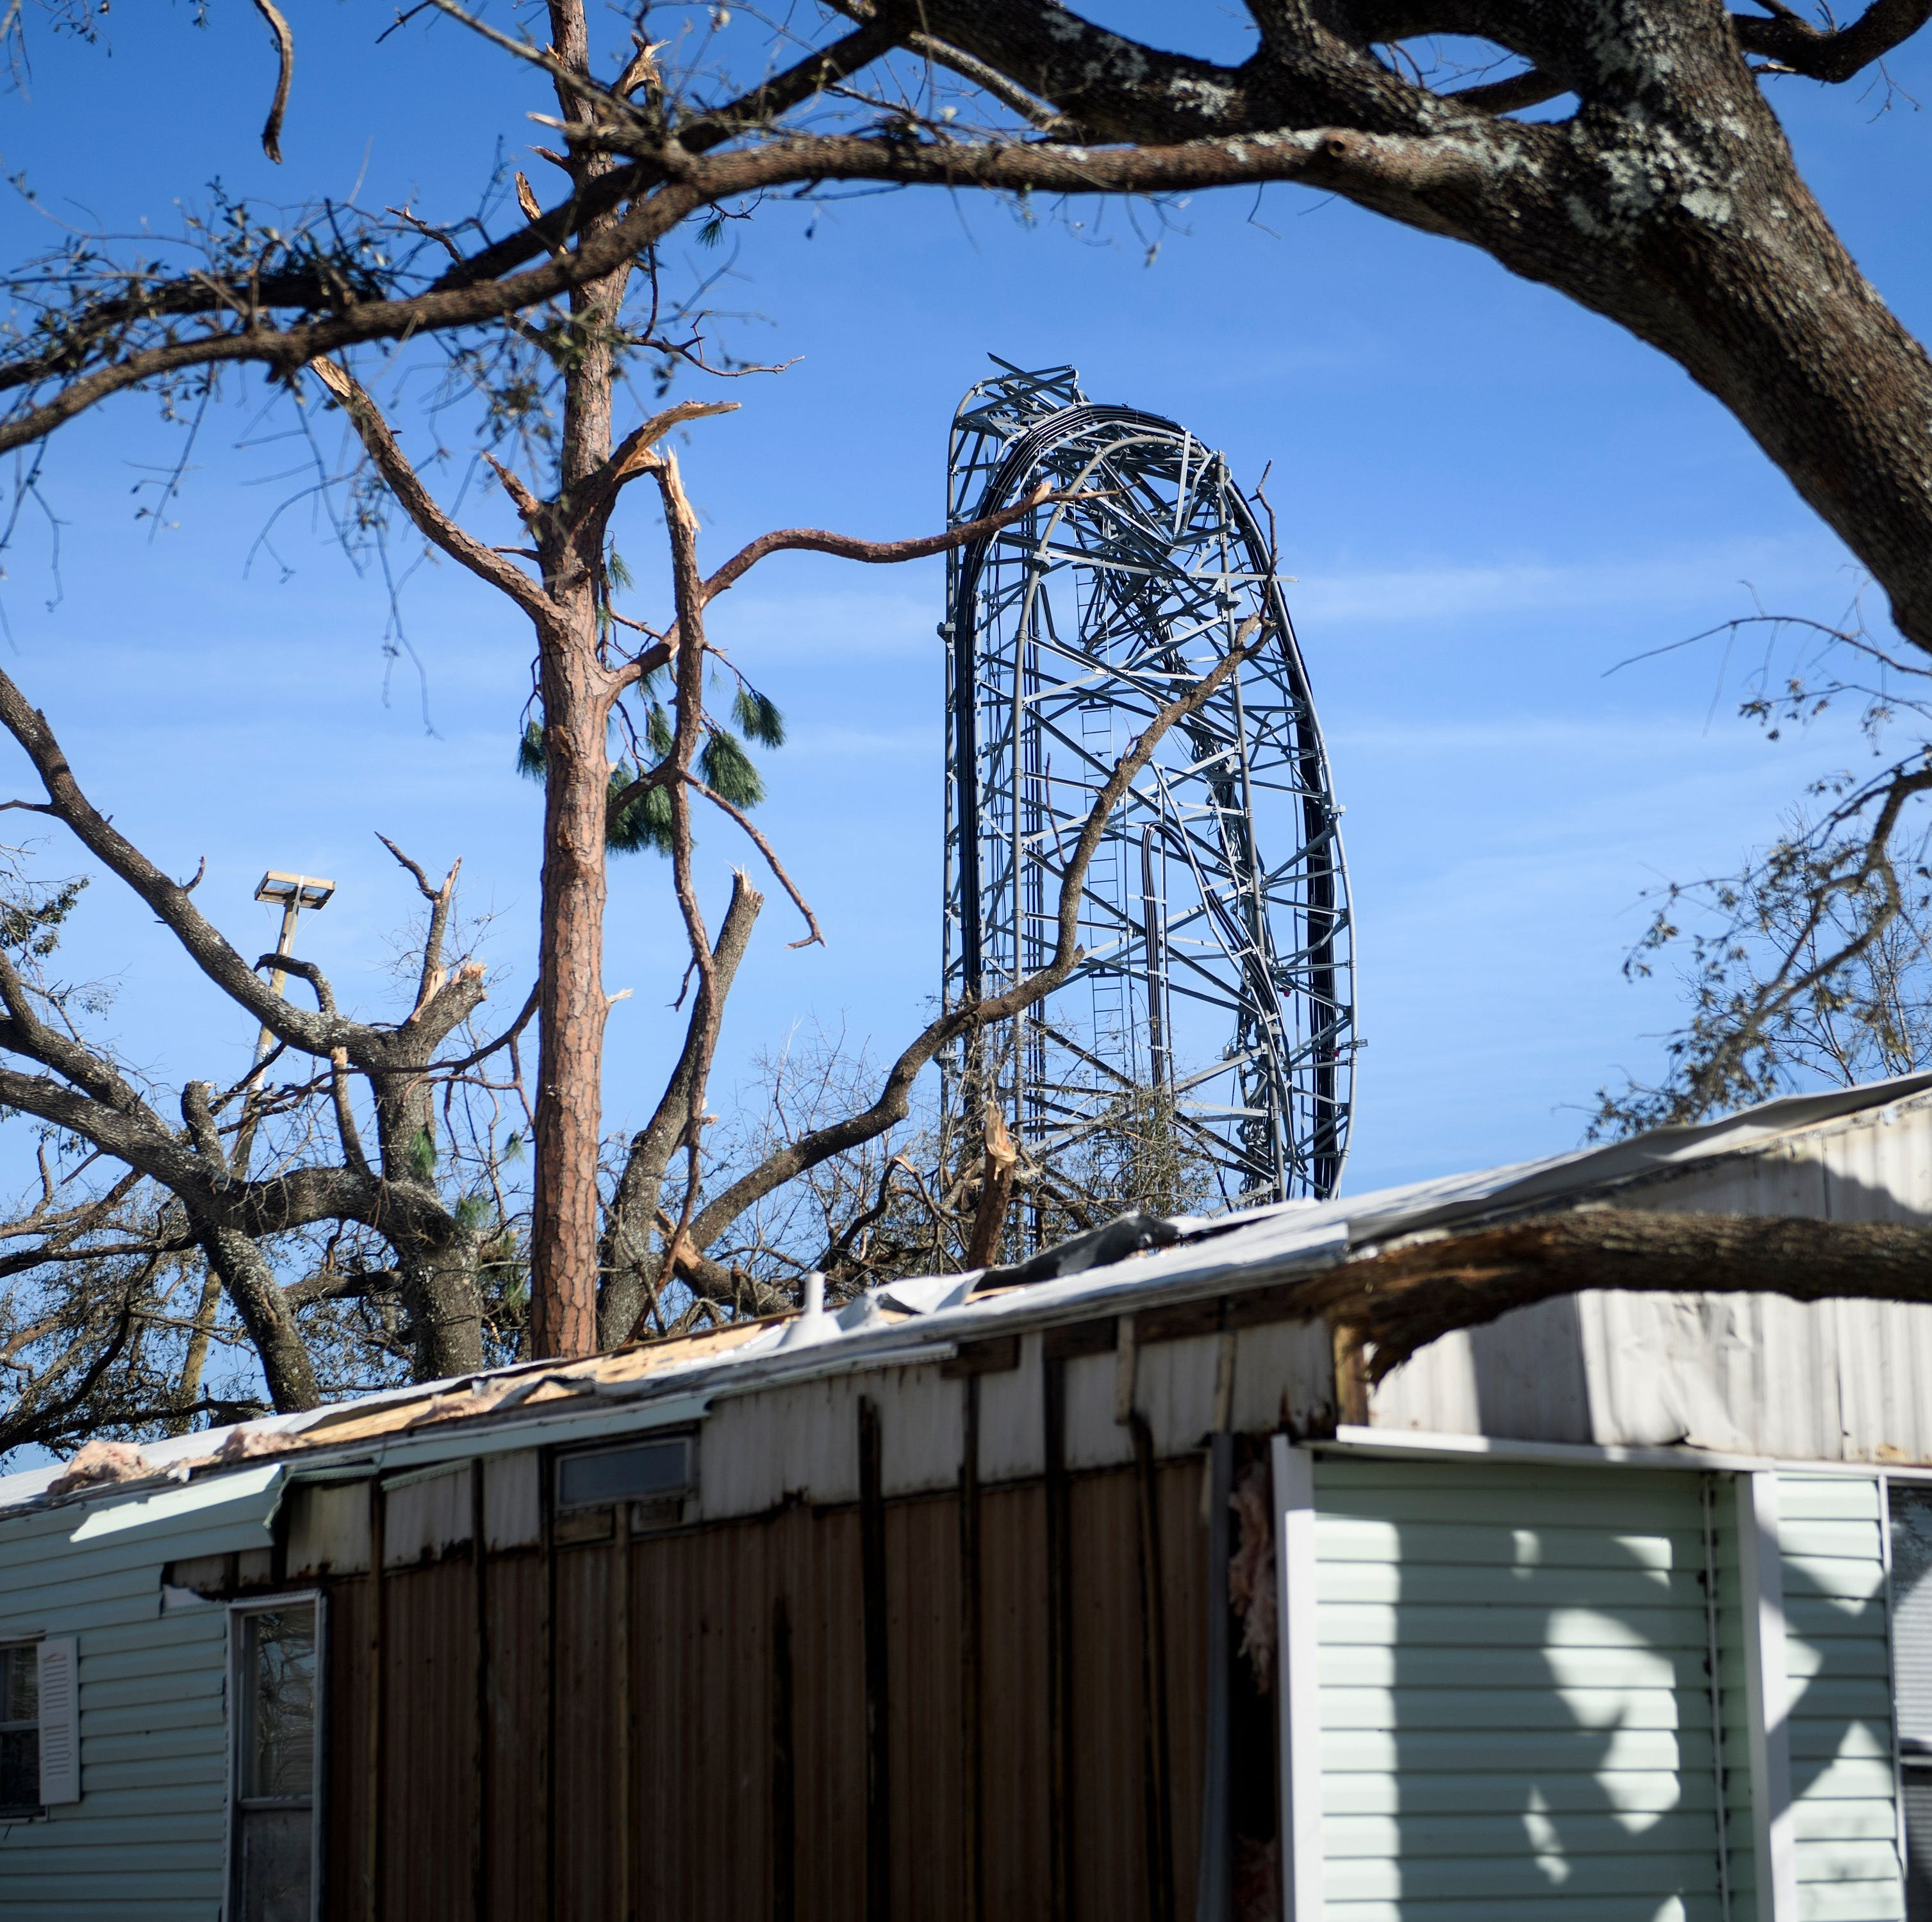 'Breakdown': Poor cell service after Hurricane Michael traced to several causes, FCC reports